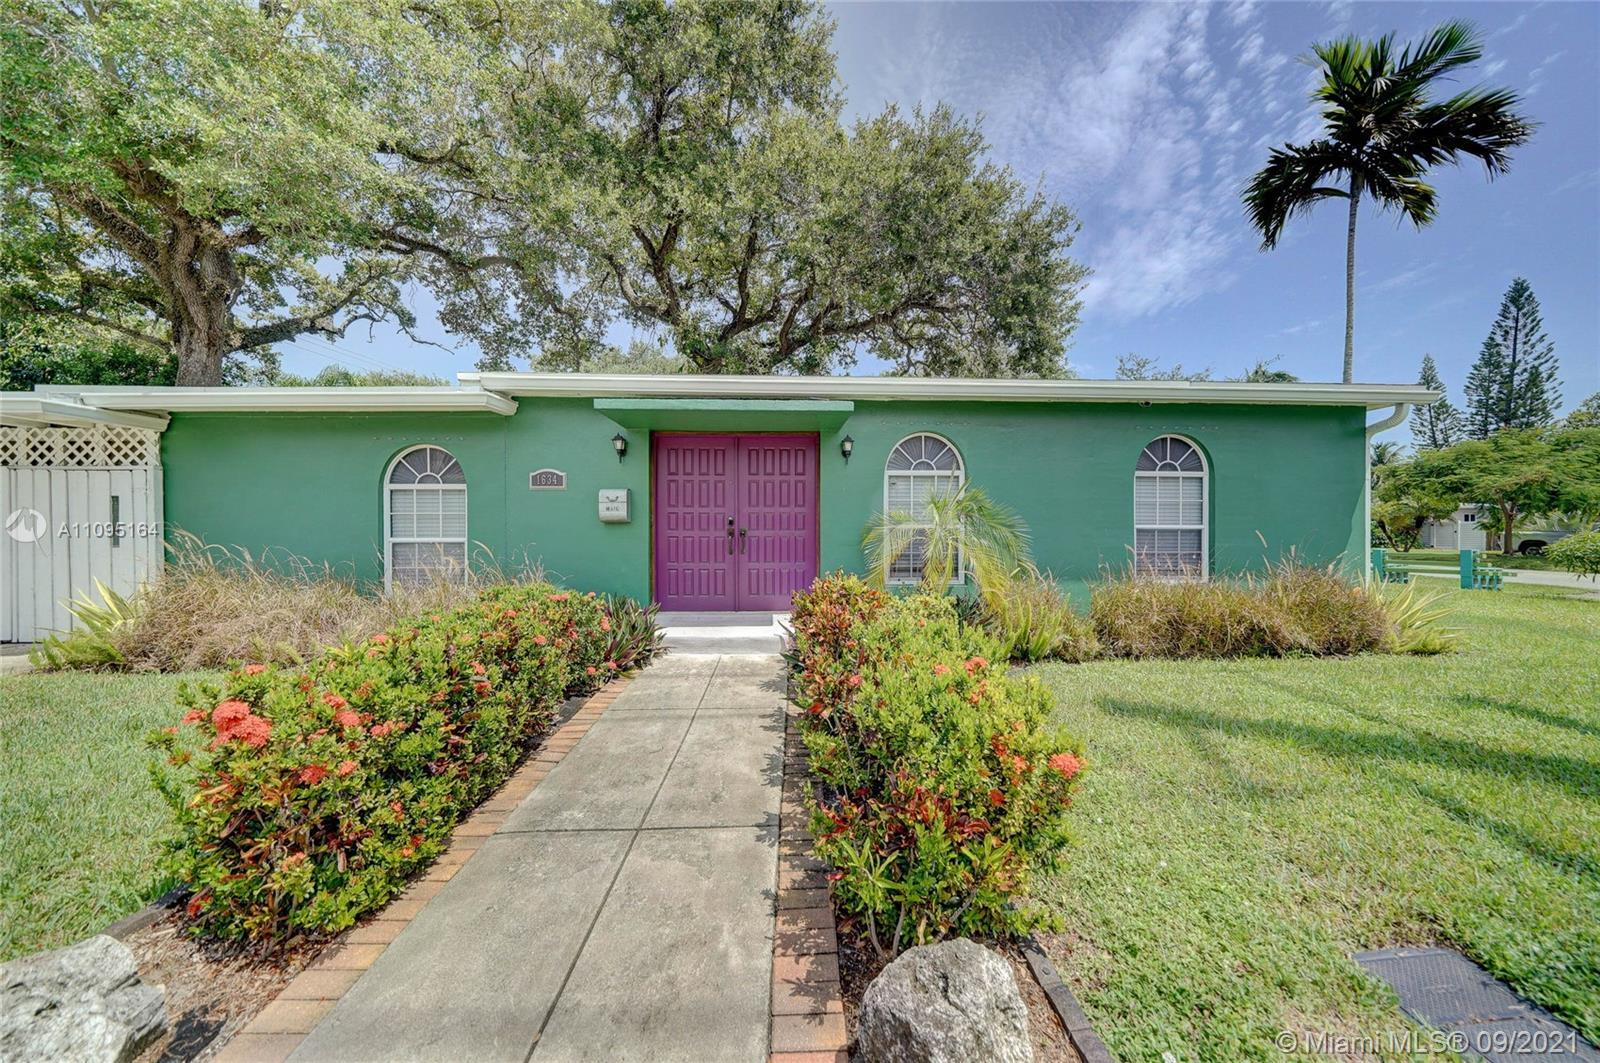 Welcome to this charming home in the perfect location minutes from Downtown Ft Lauderdale. This prop